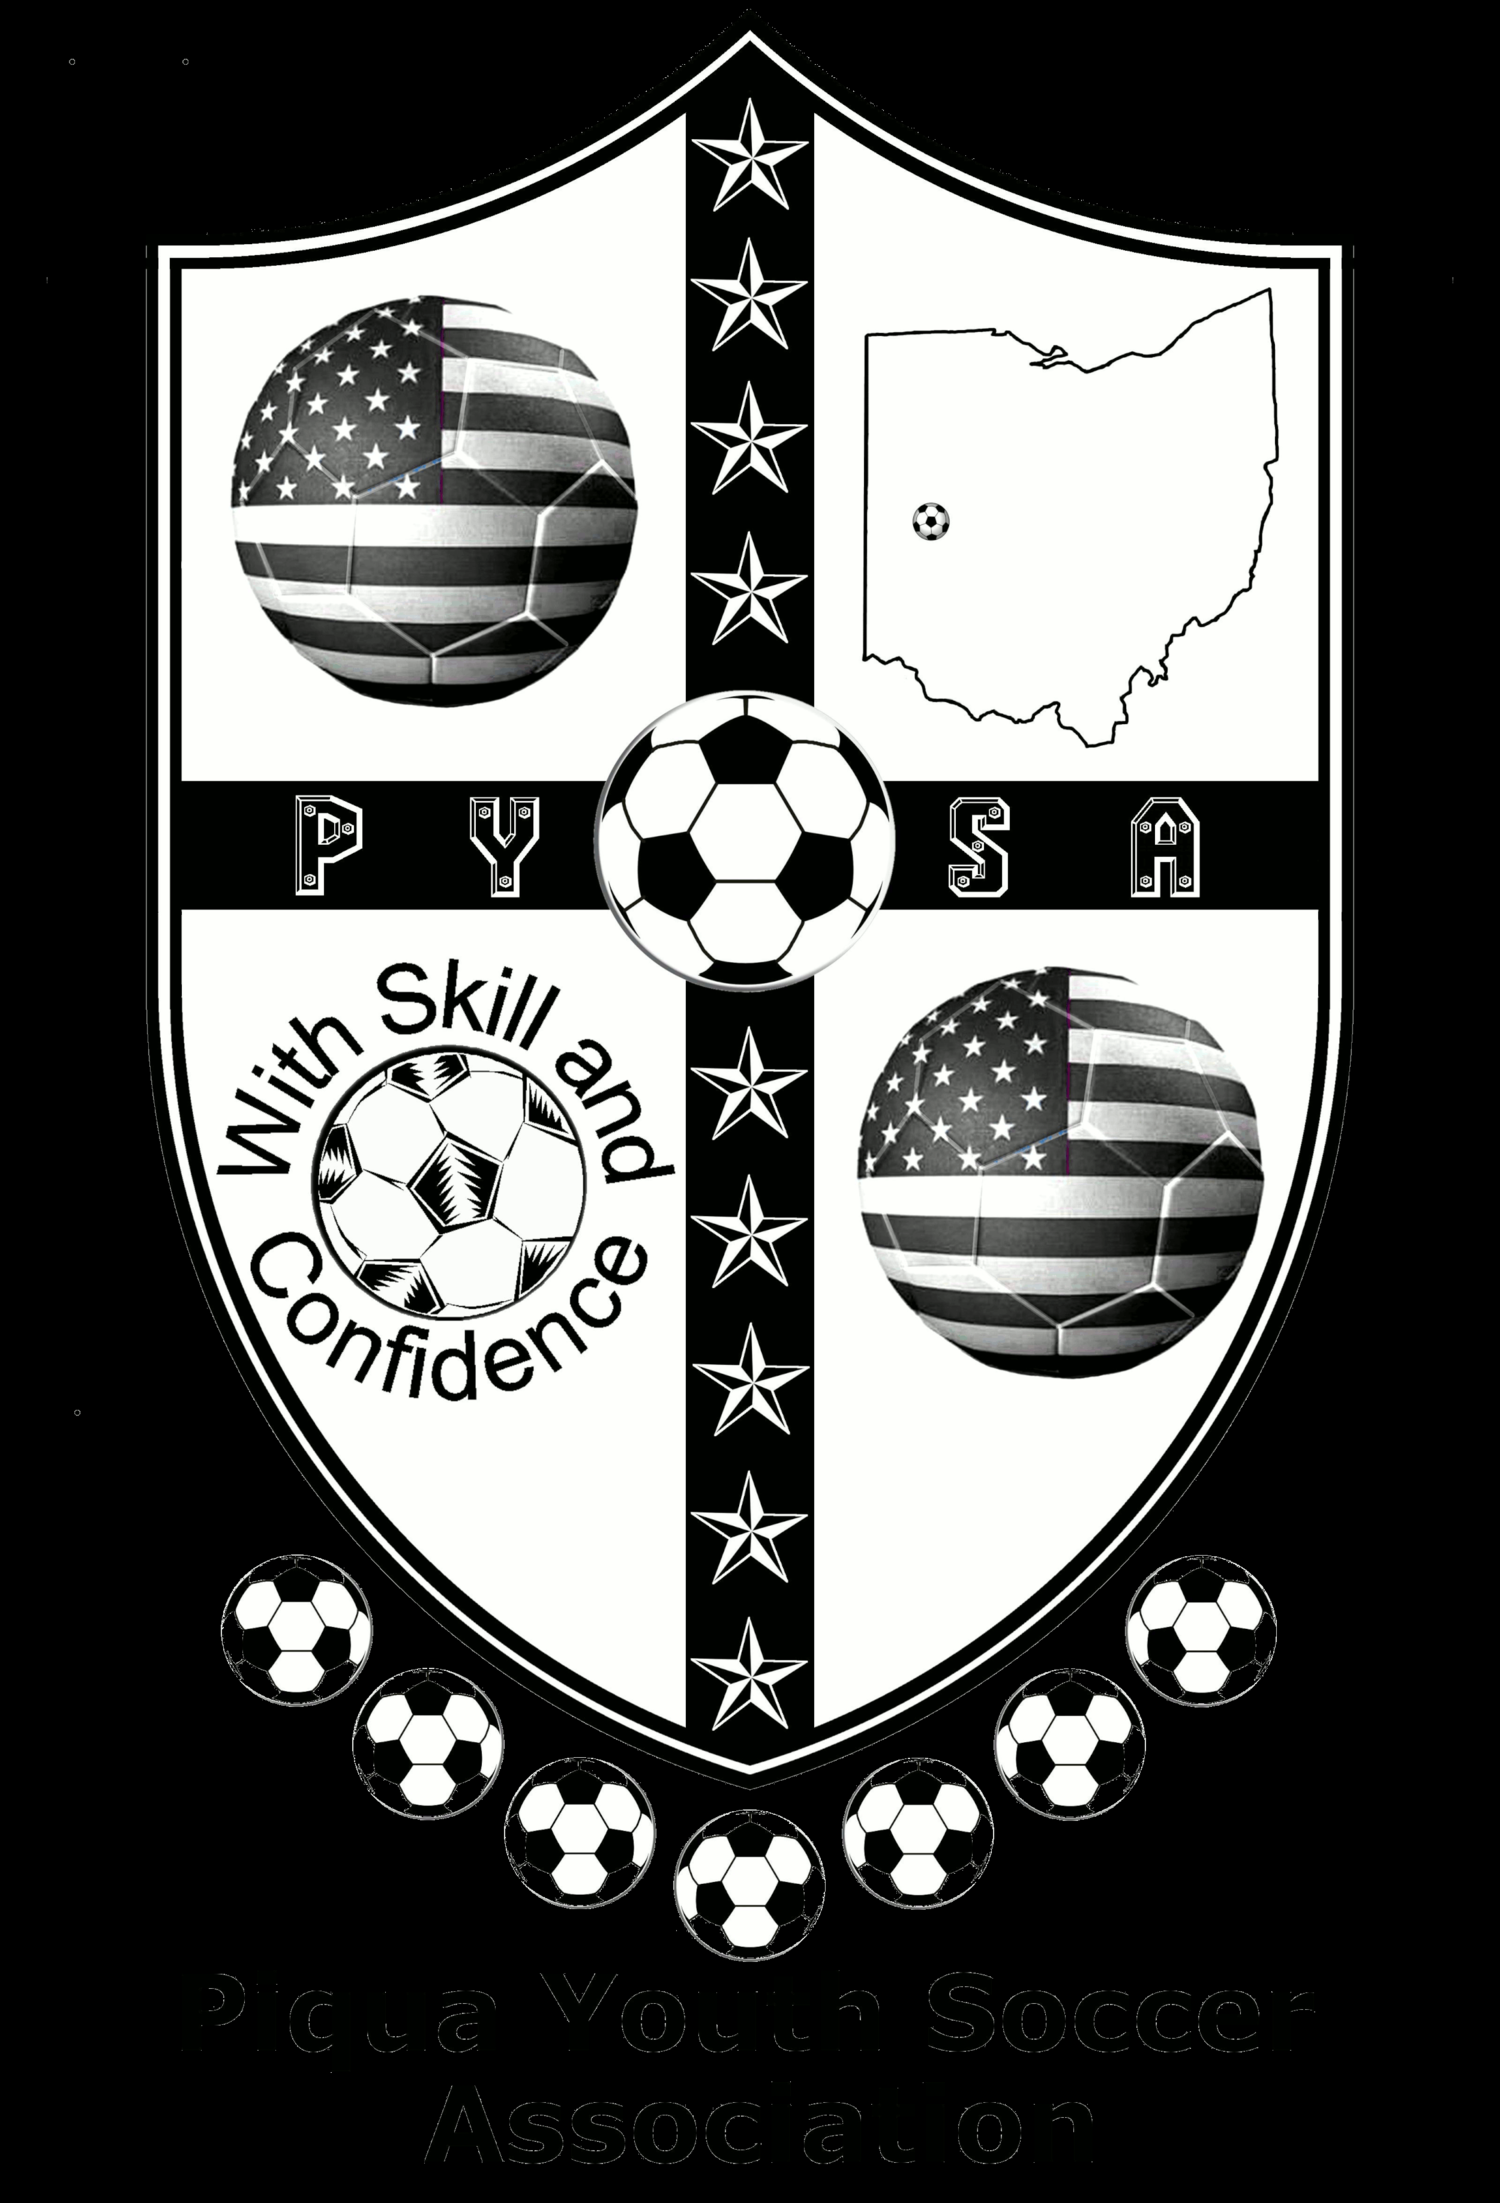 Piqua Youth Soccer Association